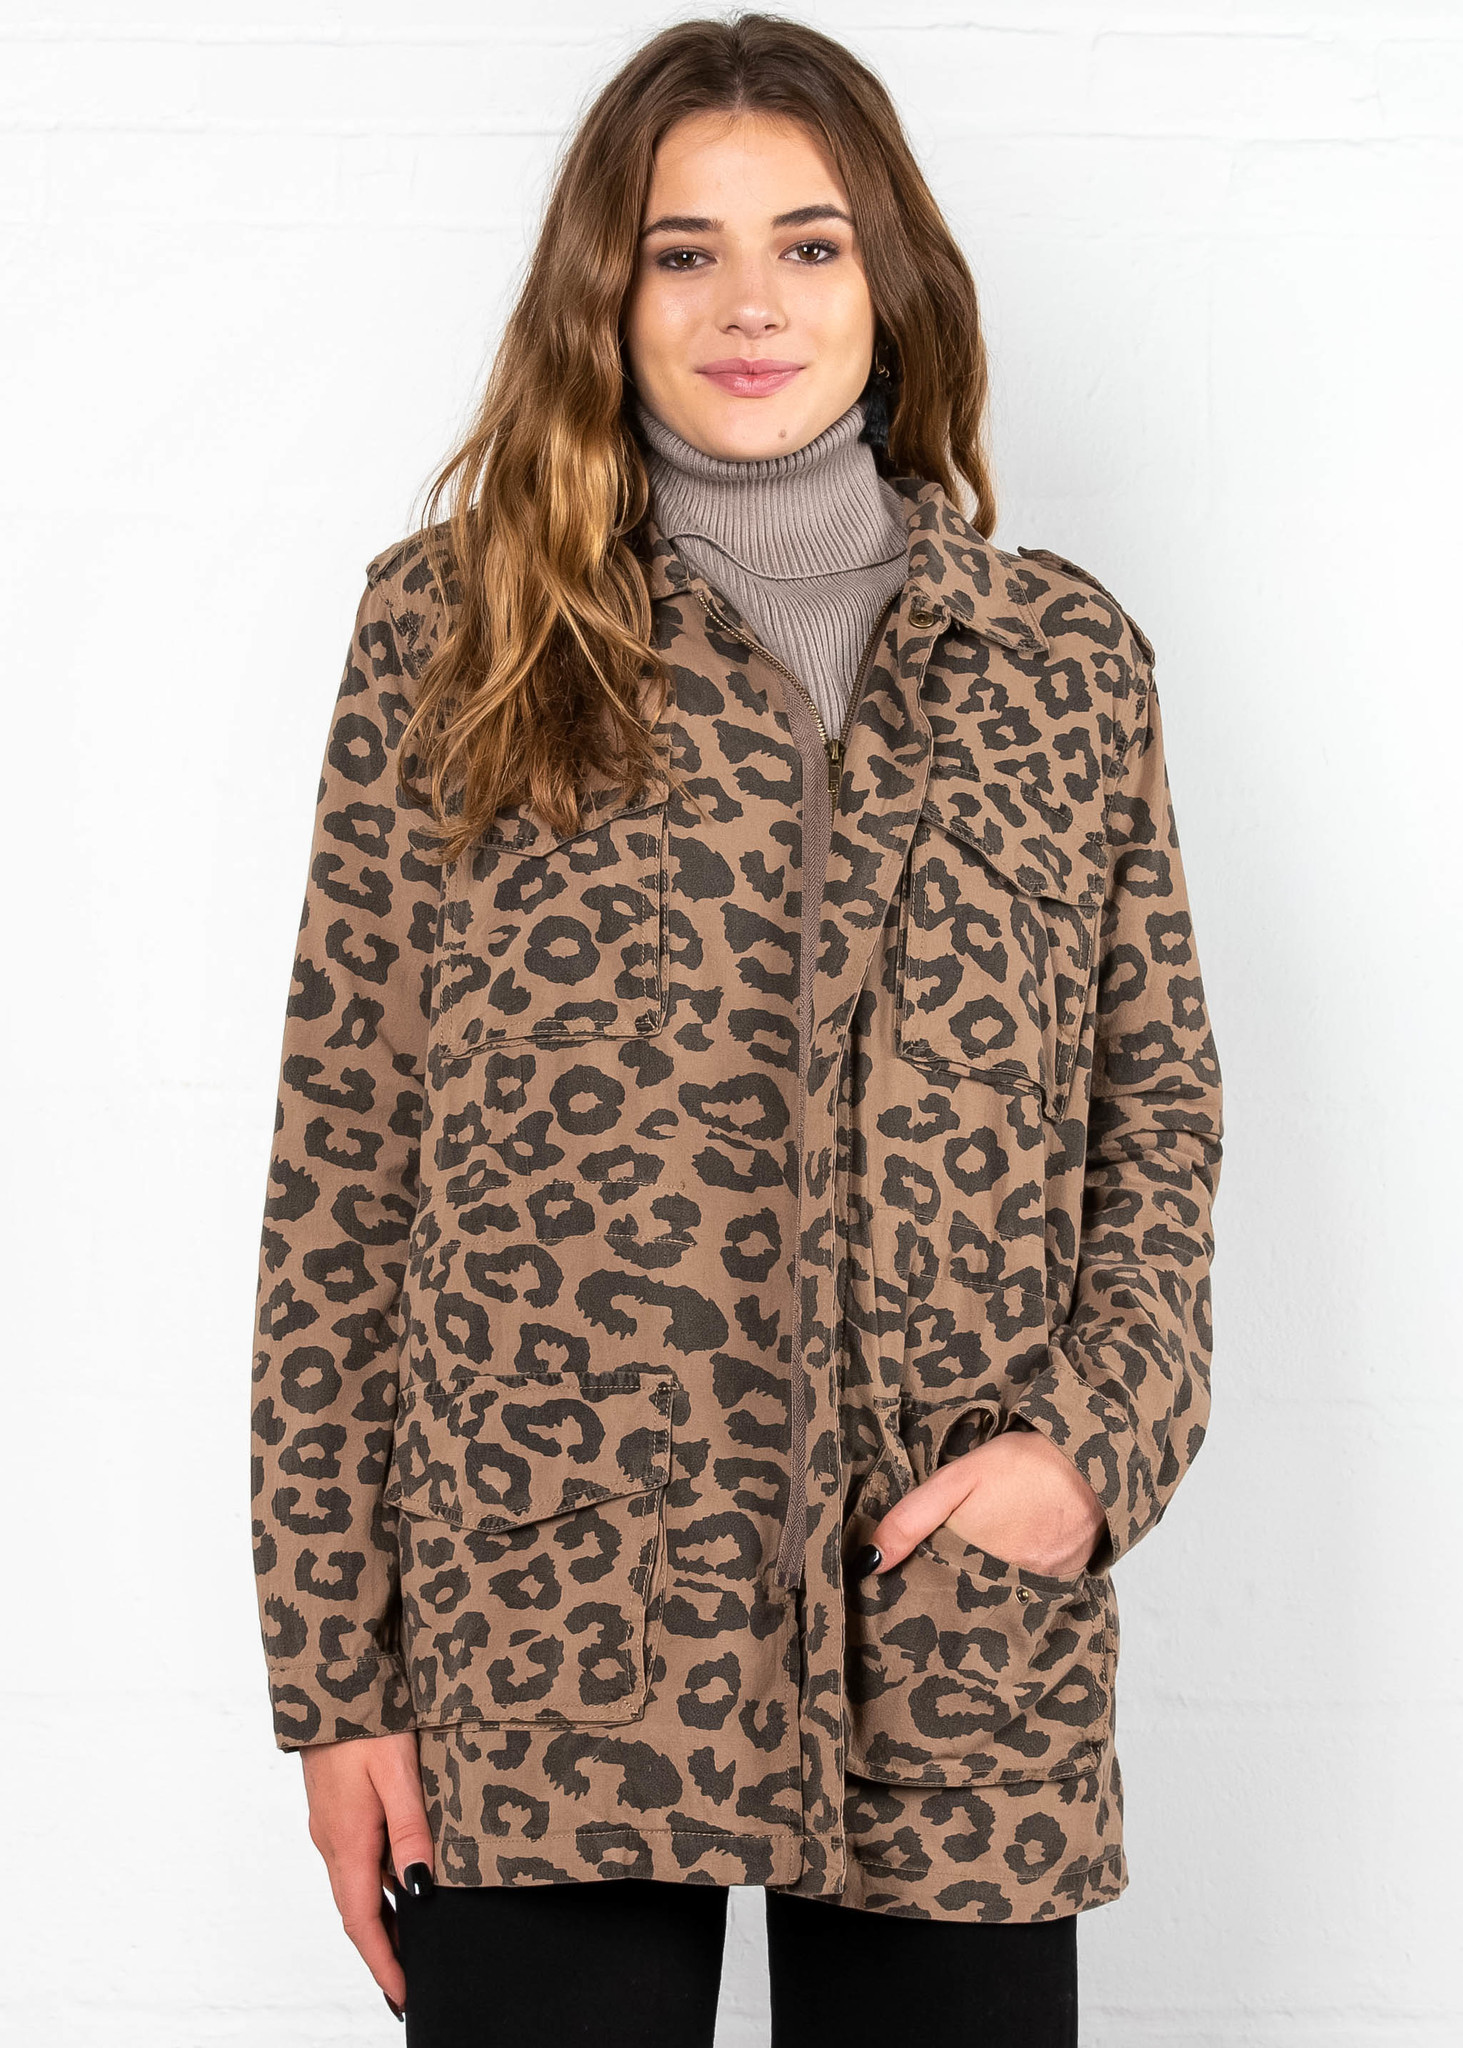 SMOOTH MOVE LEOPARD JACKET